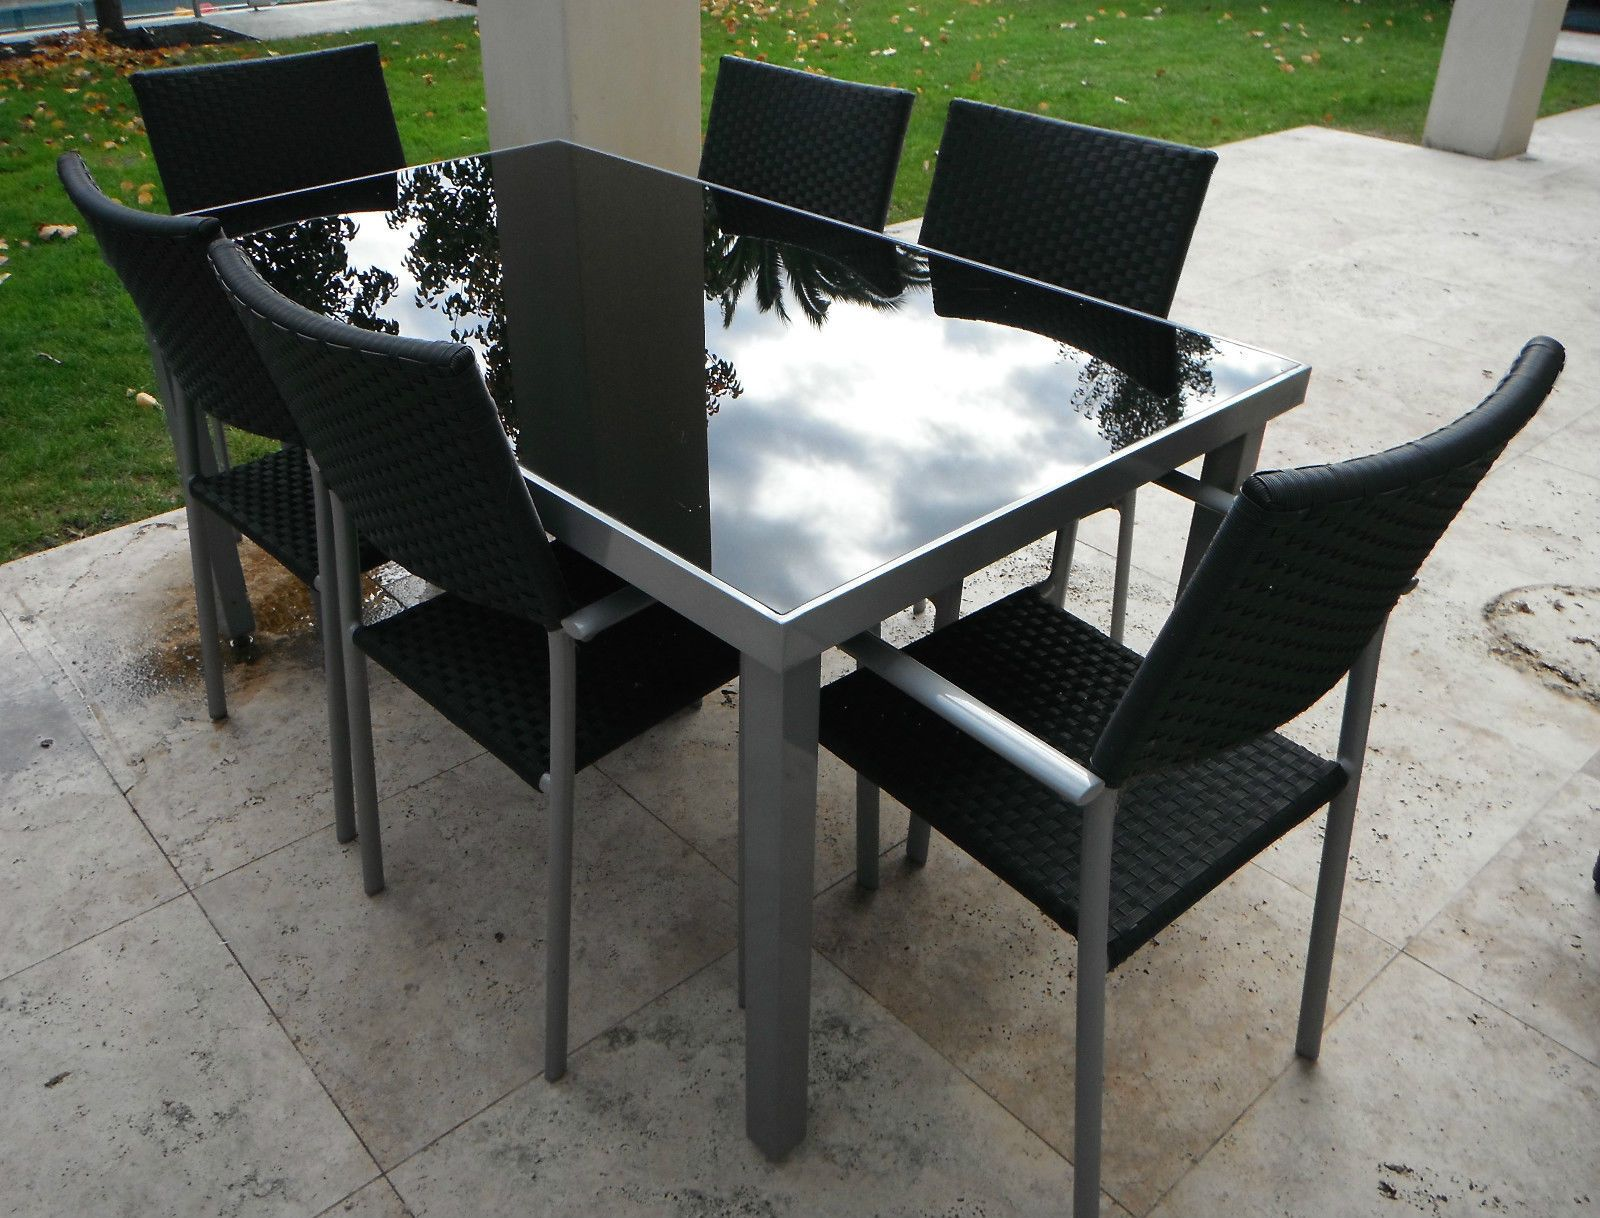 outdoor furniture table 6 chairs aluminium frame with black glass top in vic ebay outdoor. Black Bedroom Furniture Sets. Home Design Ideas